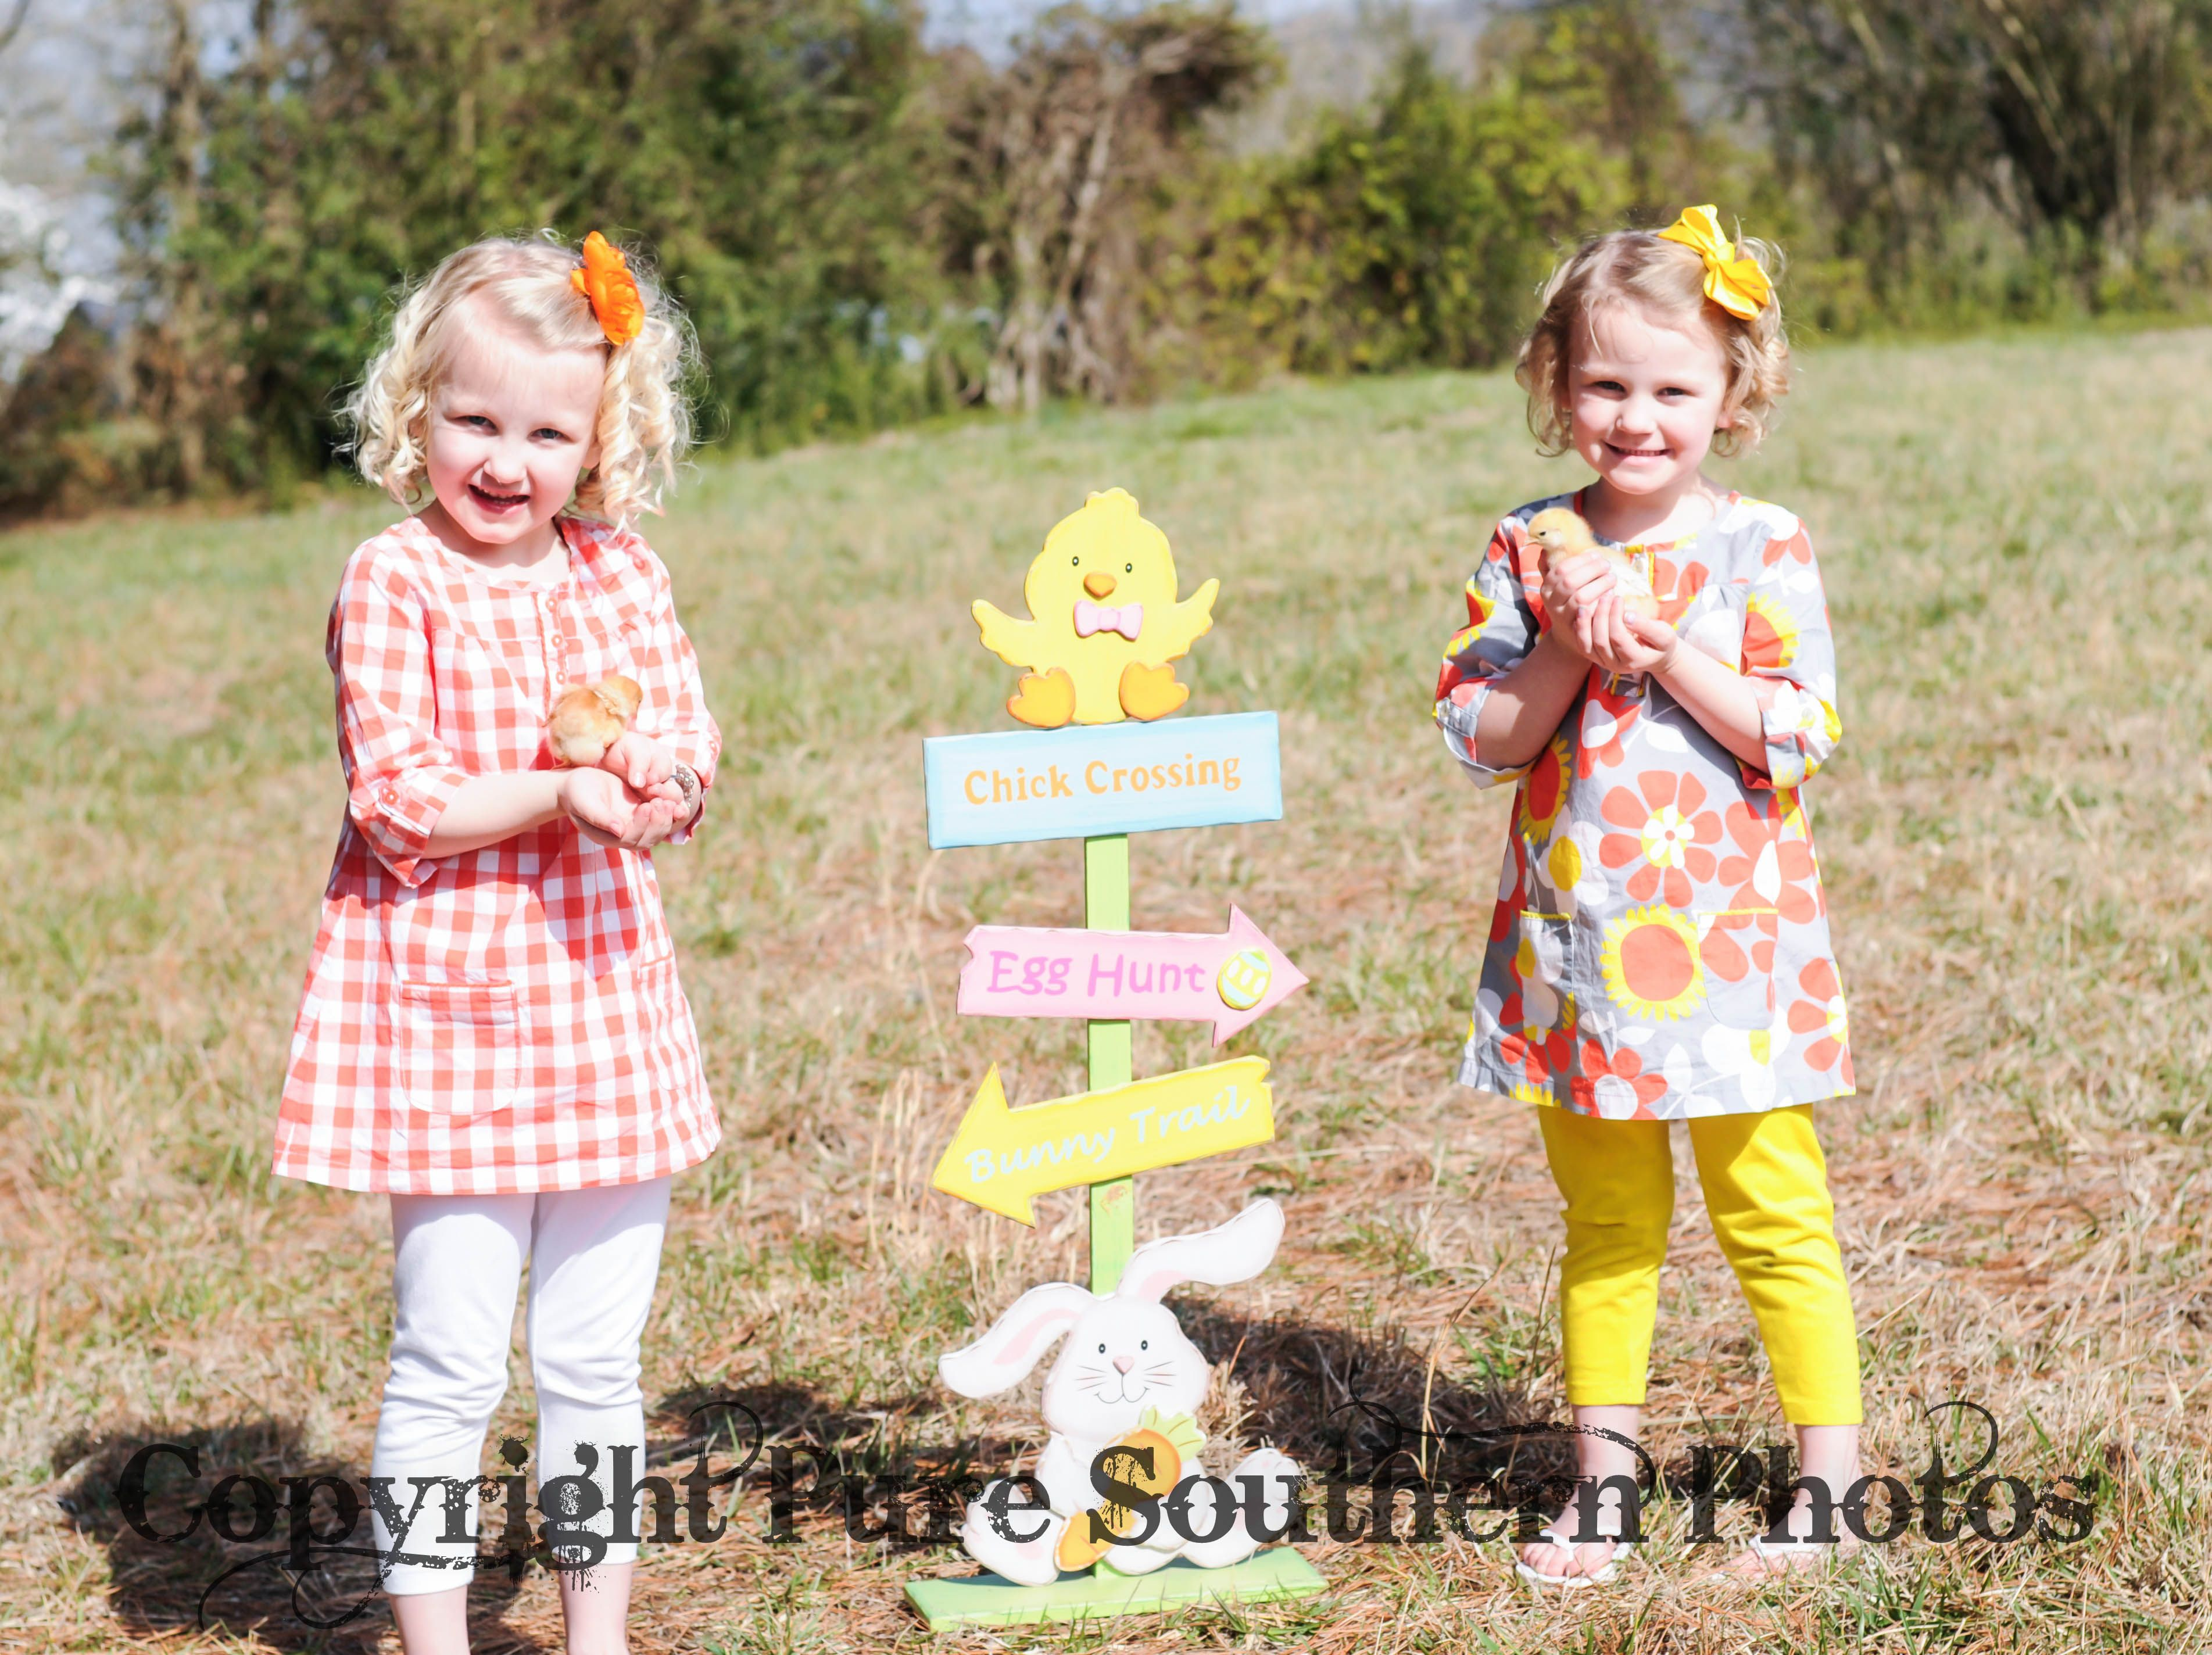 Easter photo shoot easter ideas family photo photography ideas easter photo shoot easter ideas family photo photography ideas easter photography idea negle Choice Image